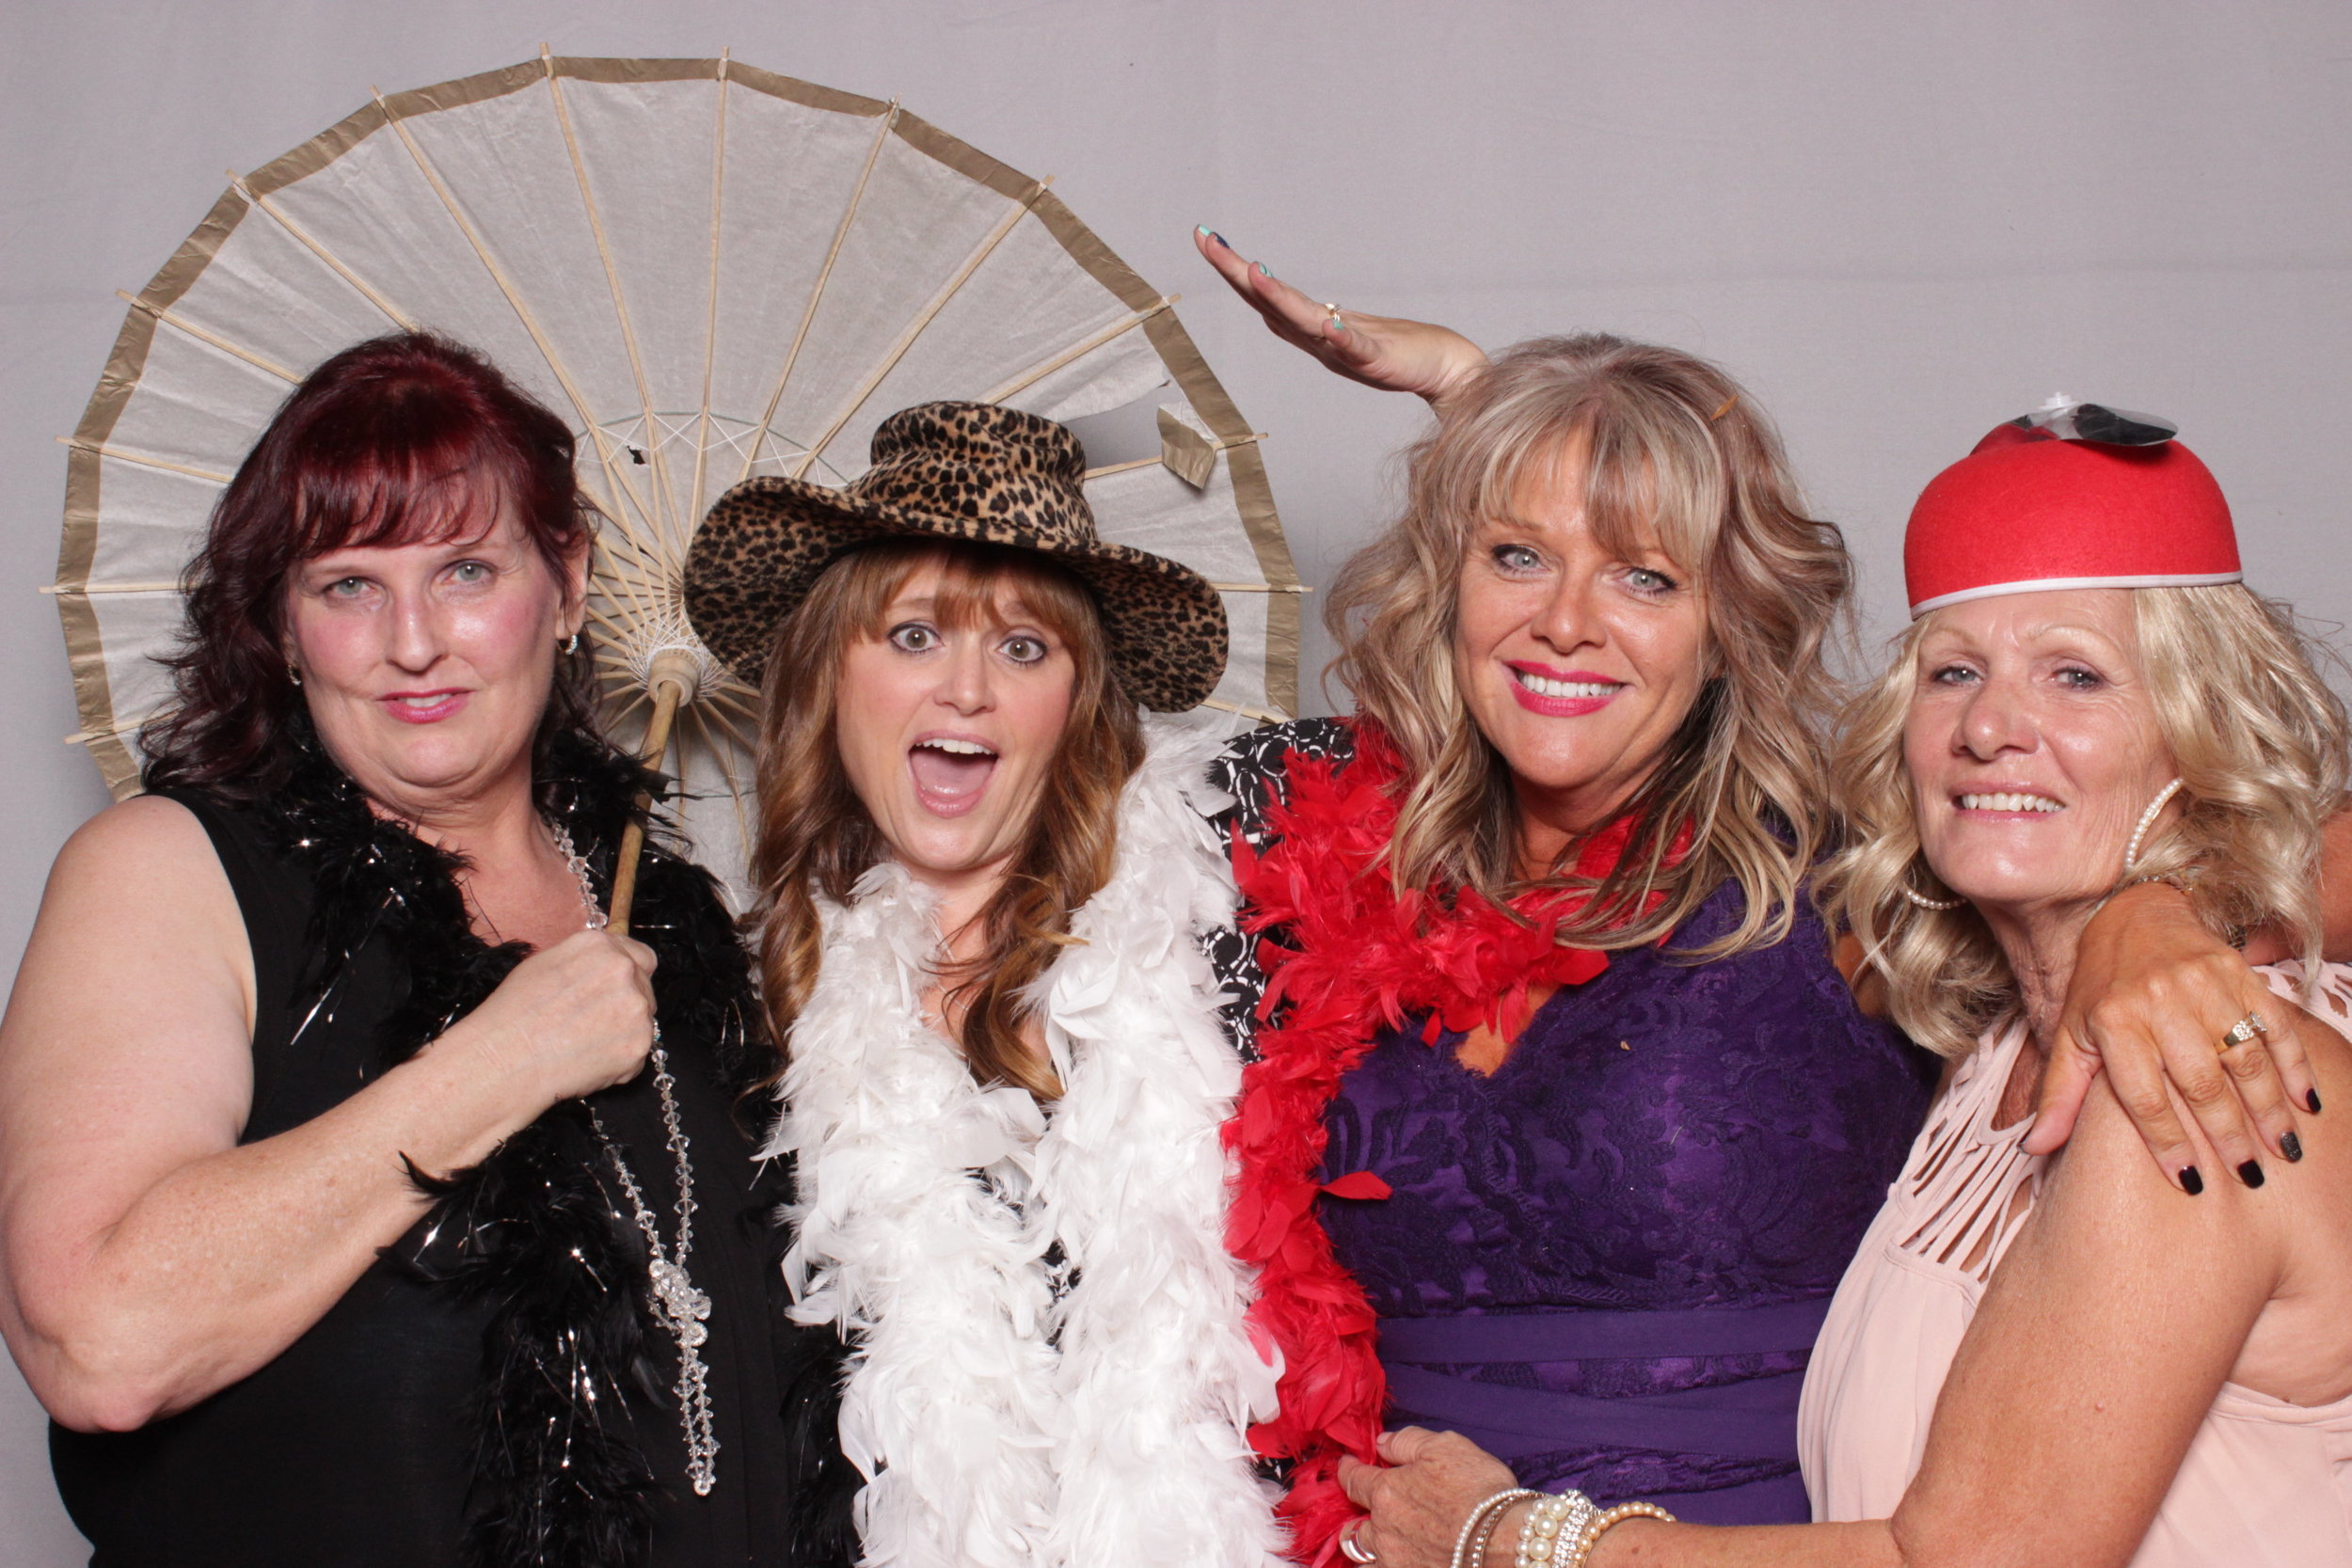 photo-booth-rental-chico-california-gale-vineyards-wedding-fun-moms